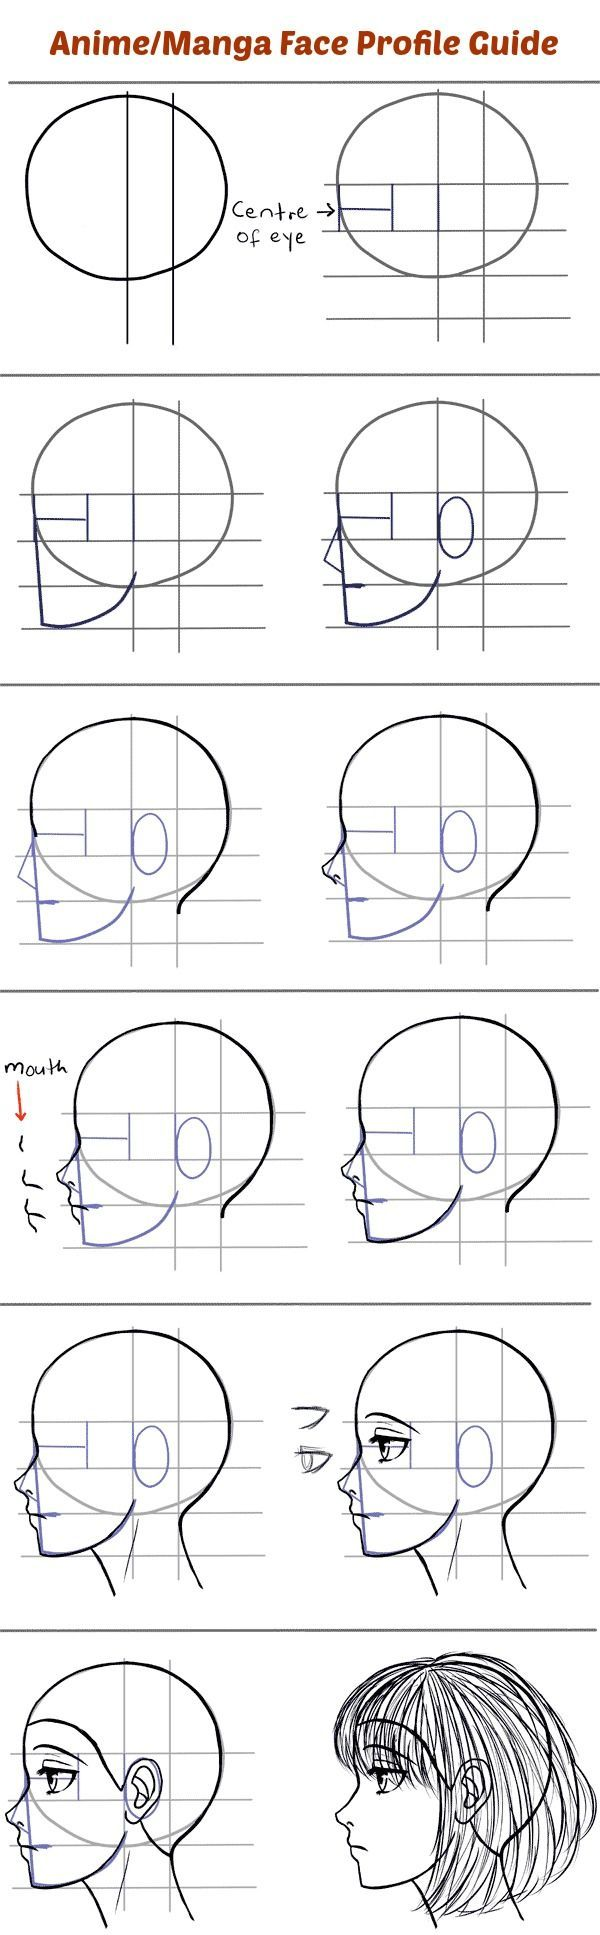 How To Draw The Side Of A Face In Manga Style